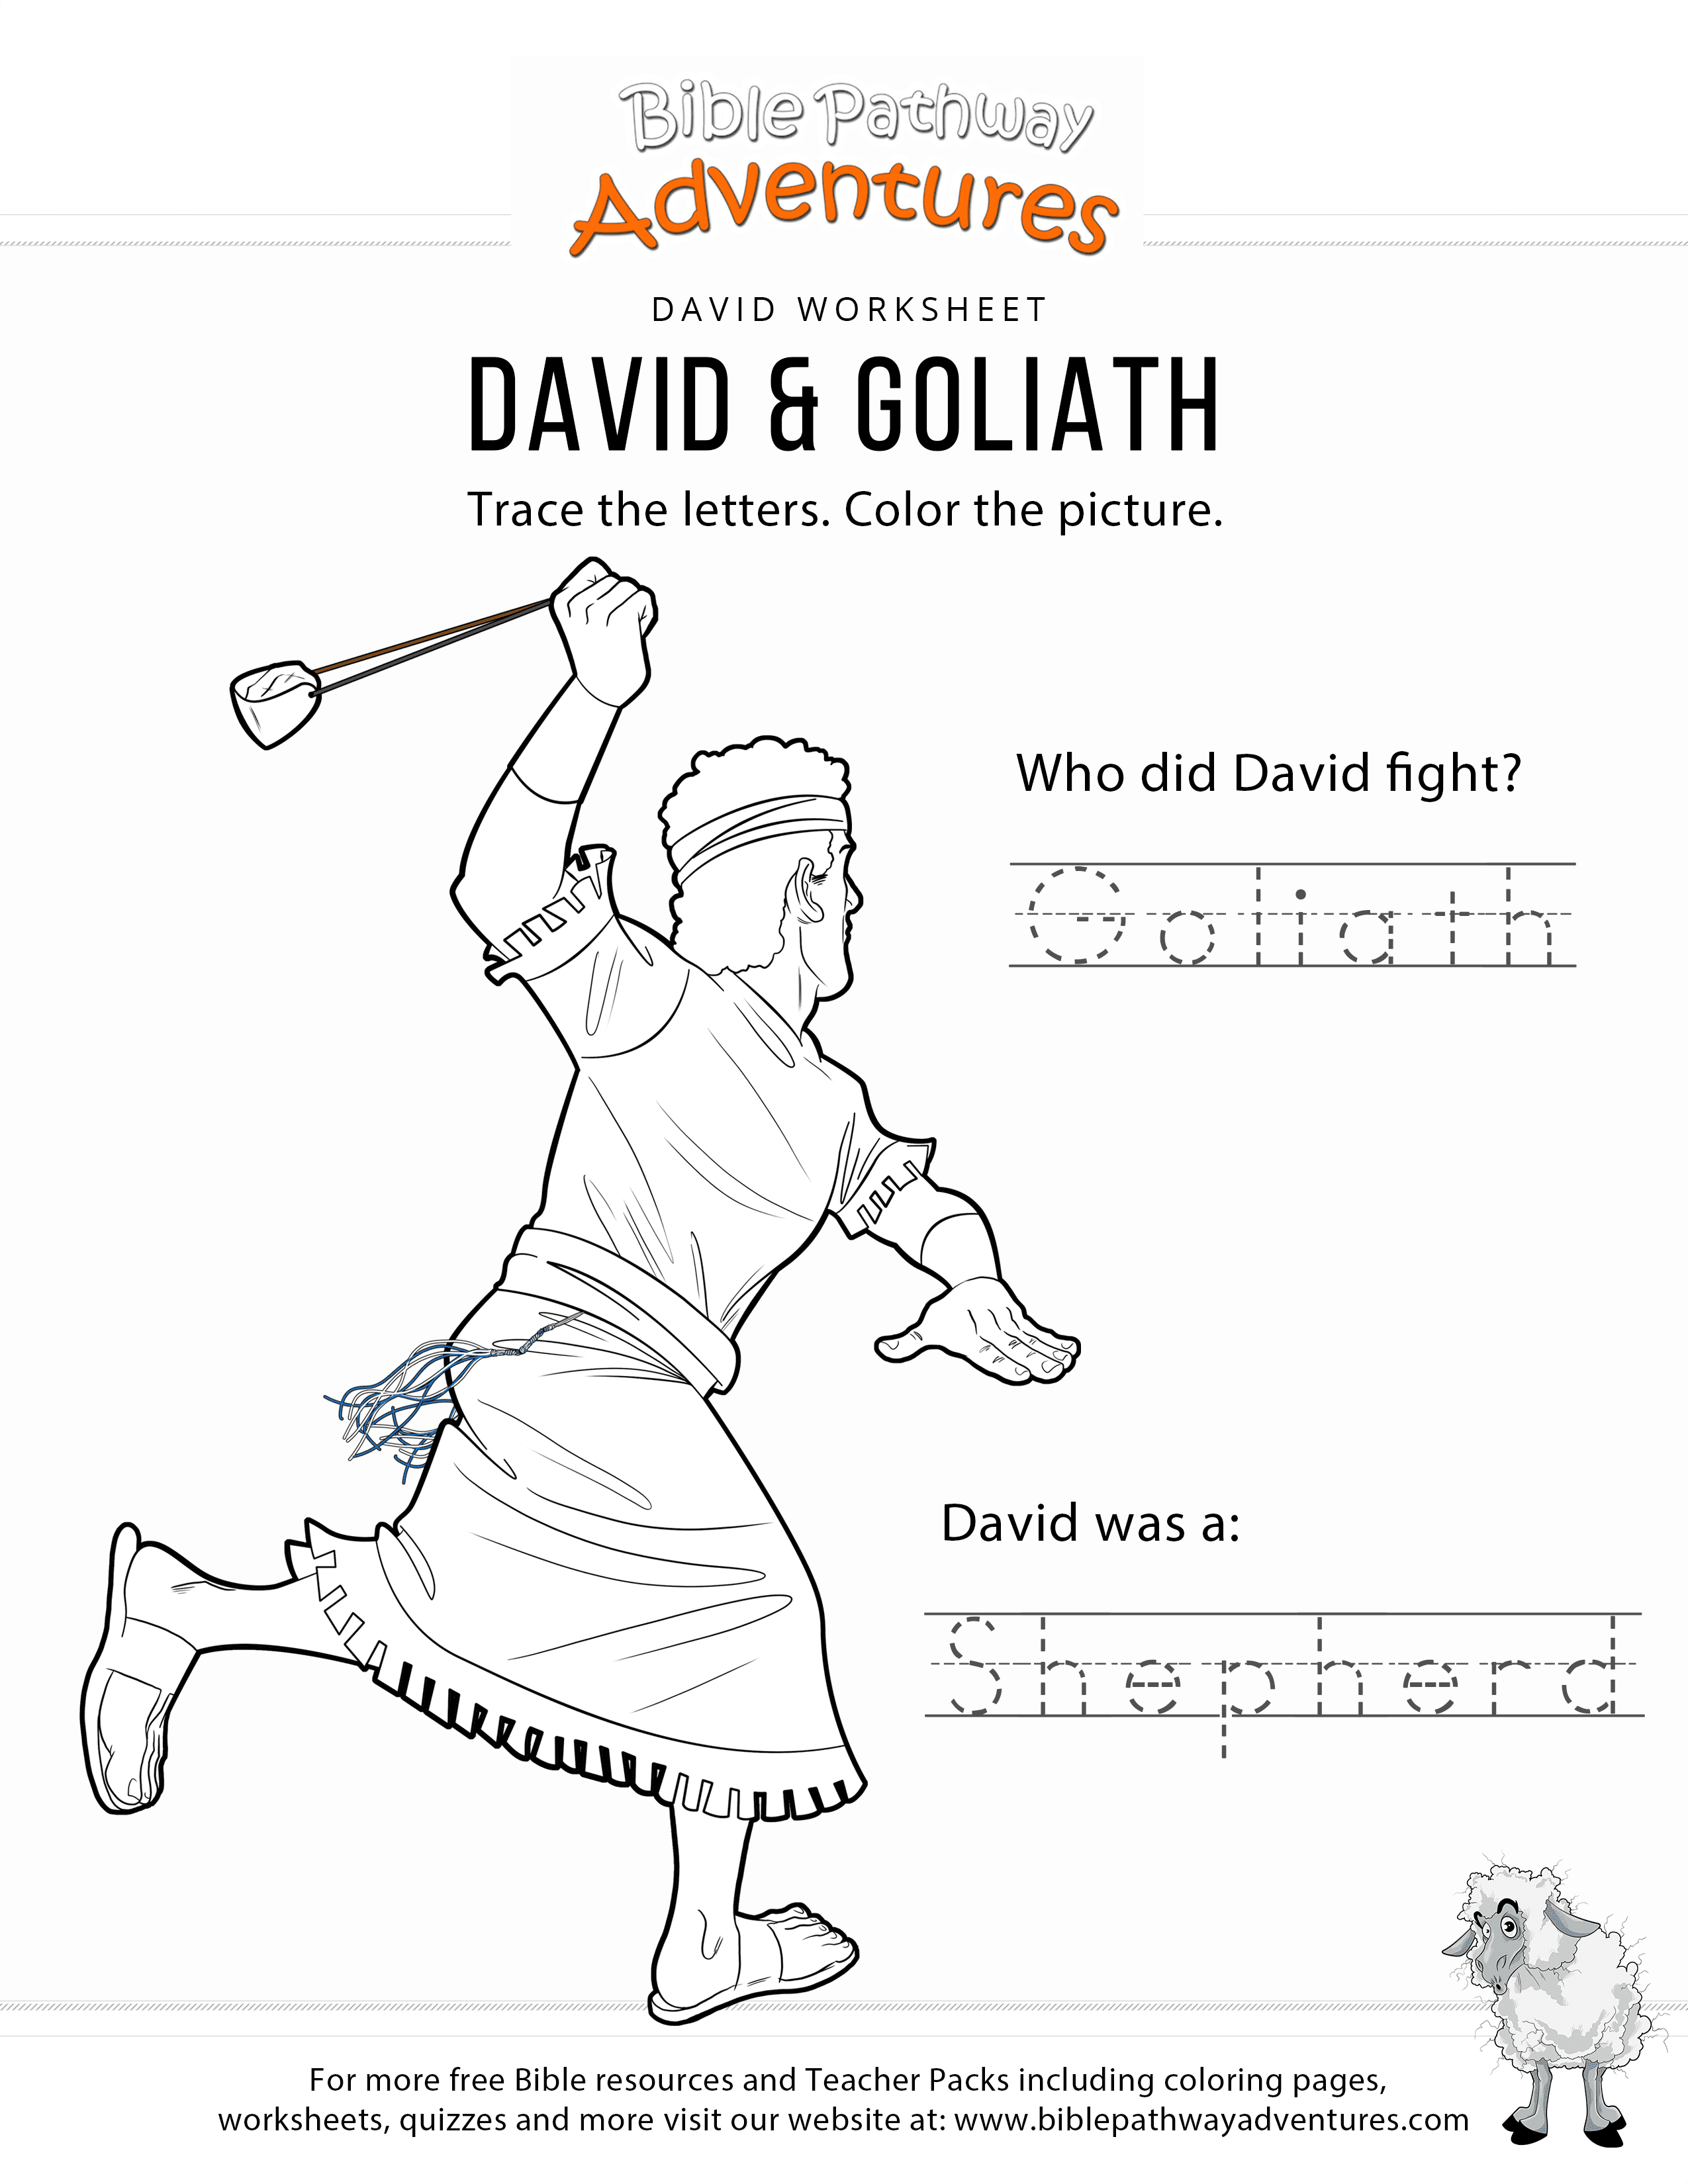 David Goliath Copy And Coloring Page Bible Pathway Adventures